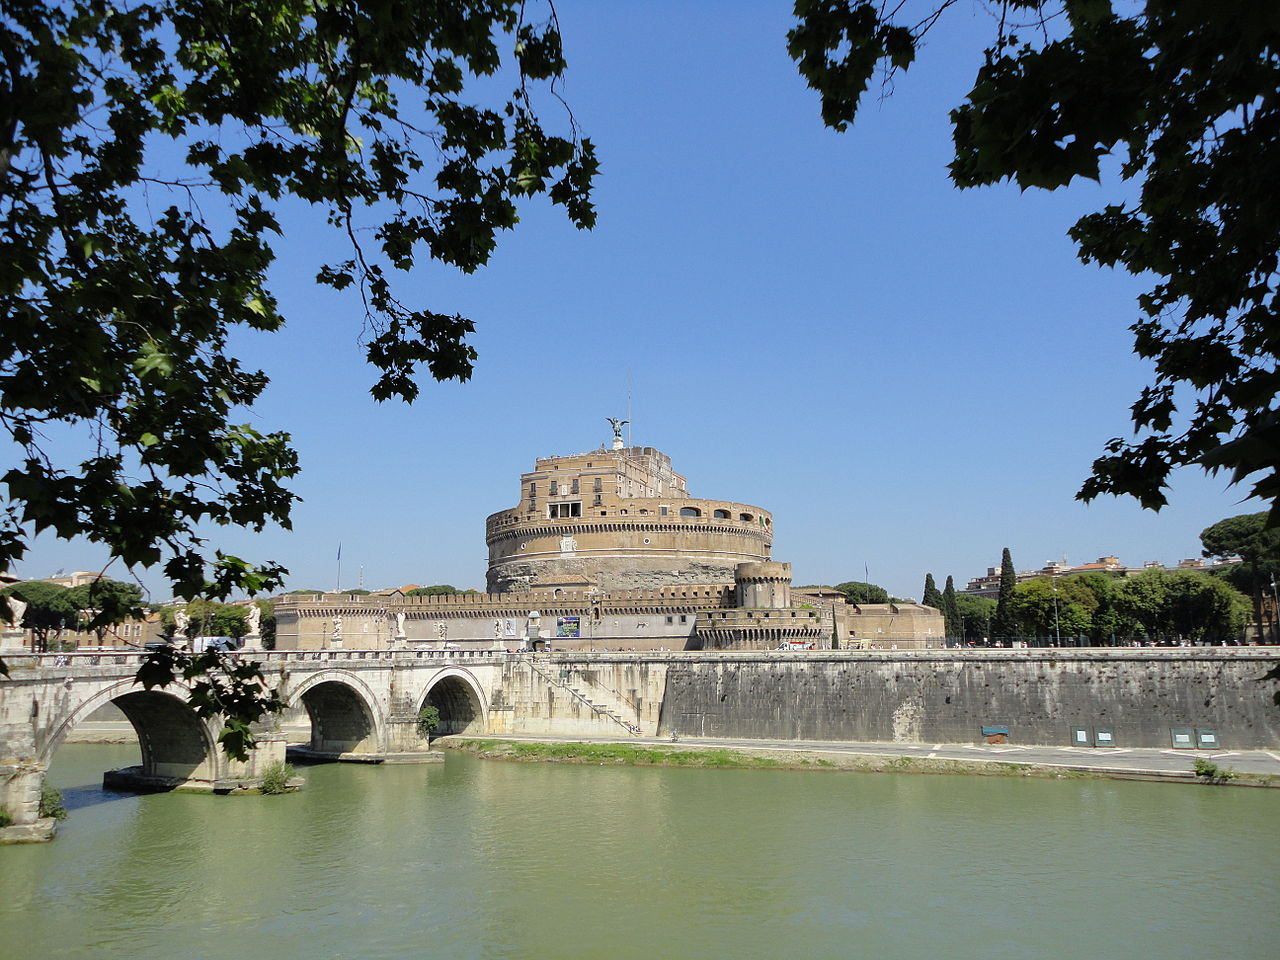 View of Mausoleum of emperor Hadrian or the Castel Sant'Angelo